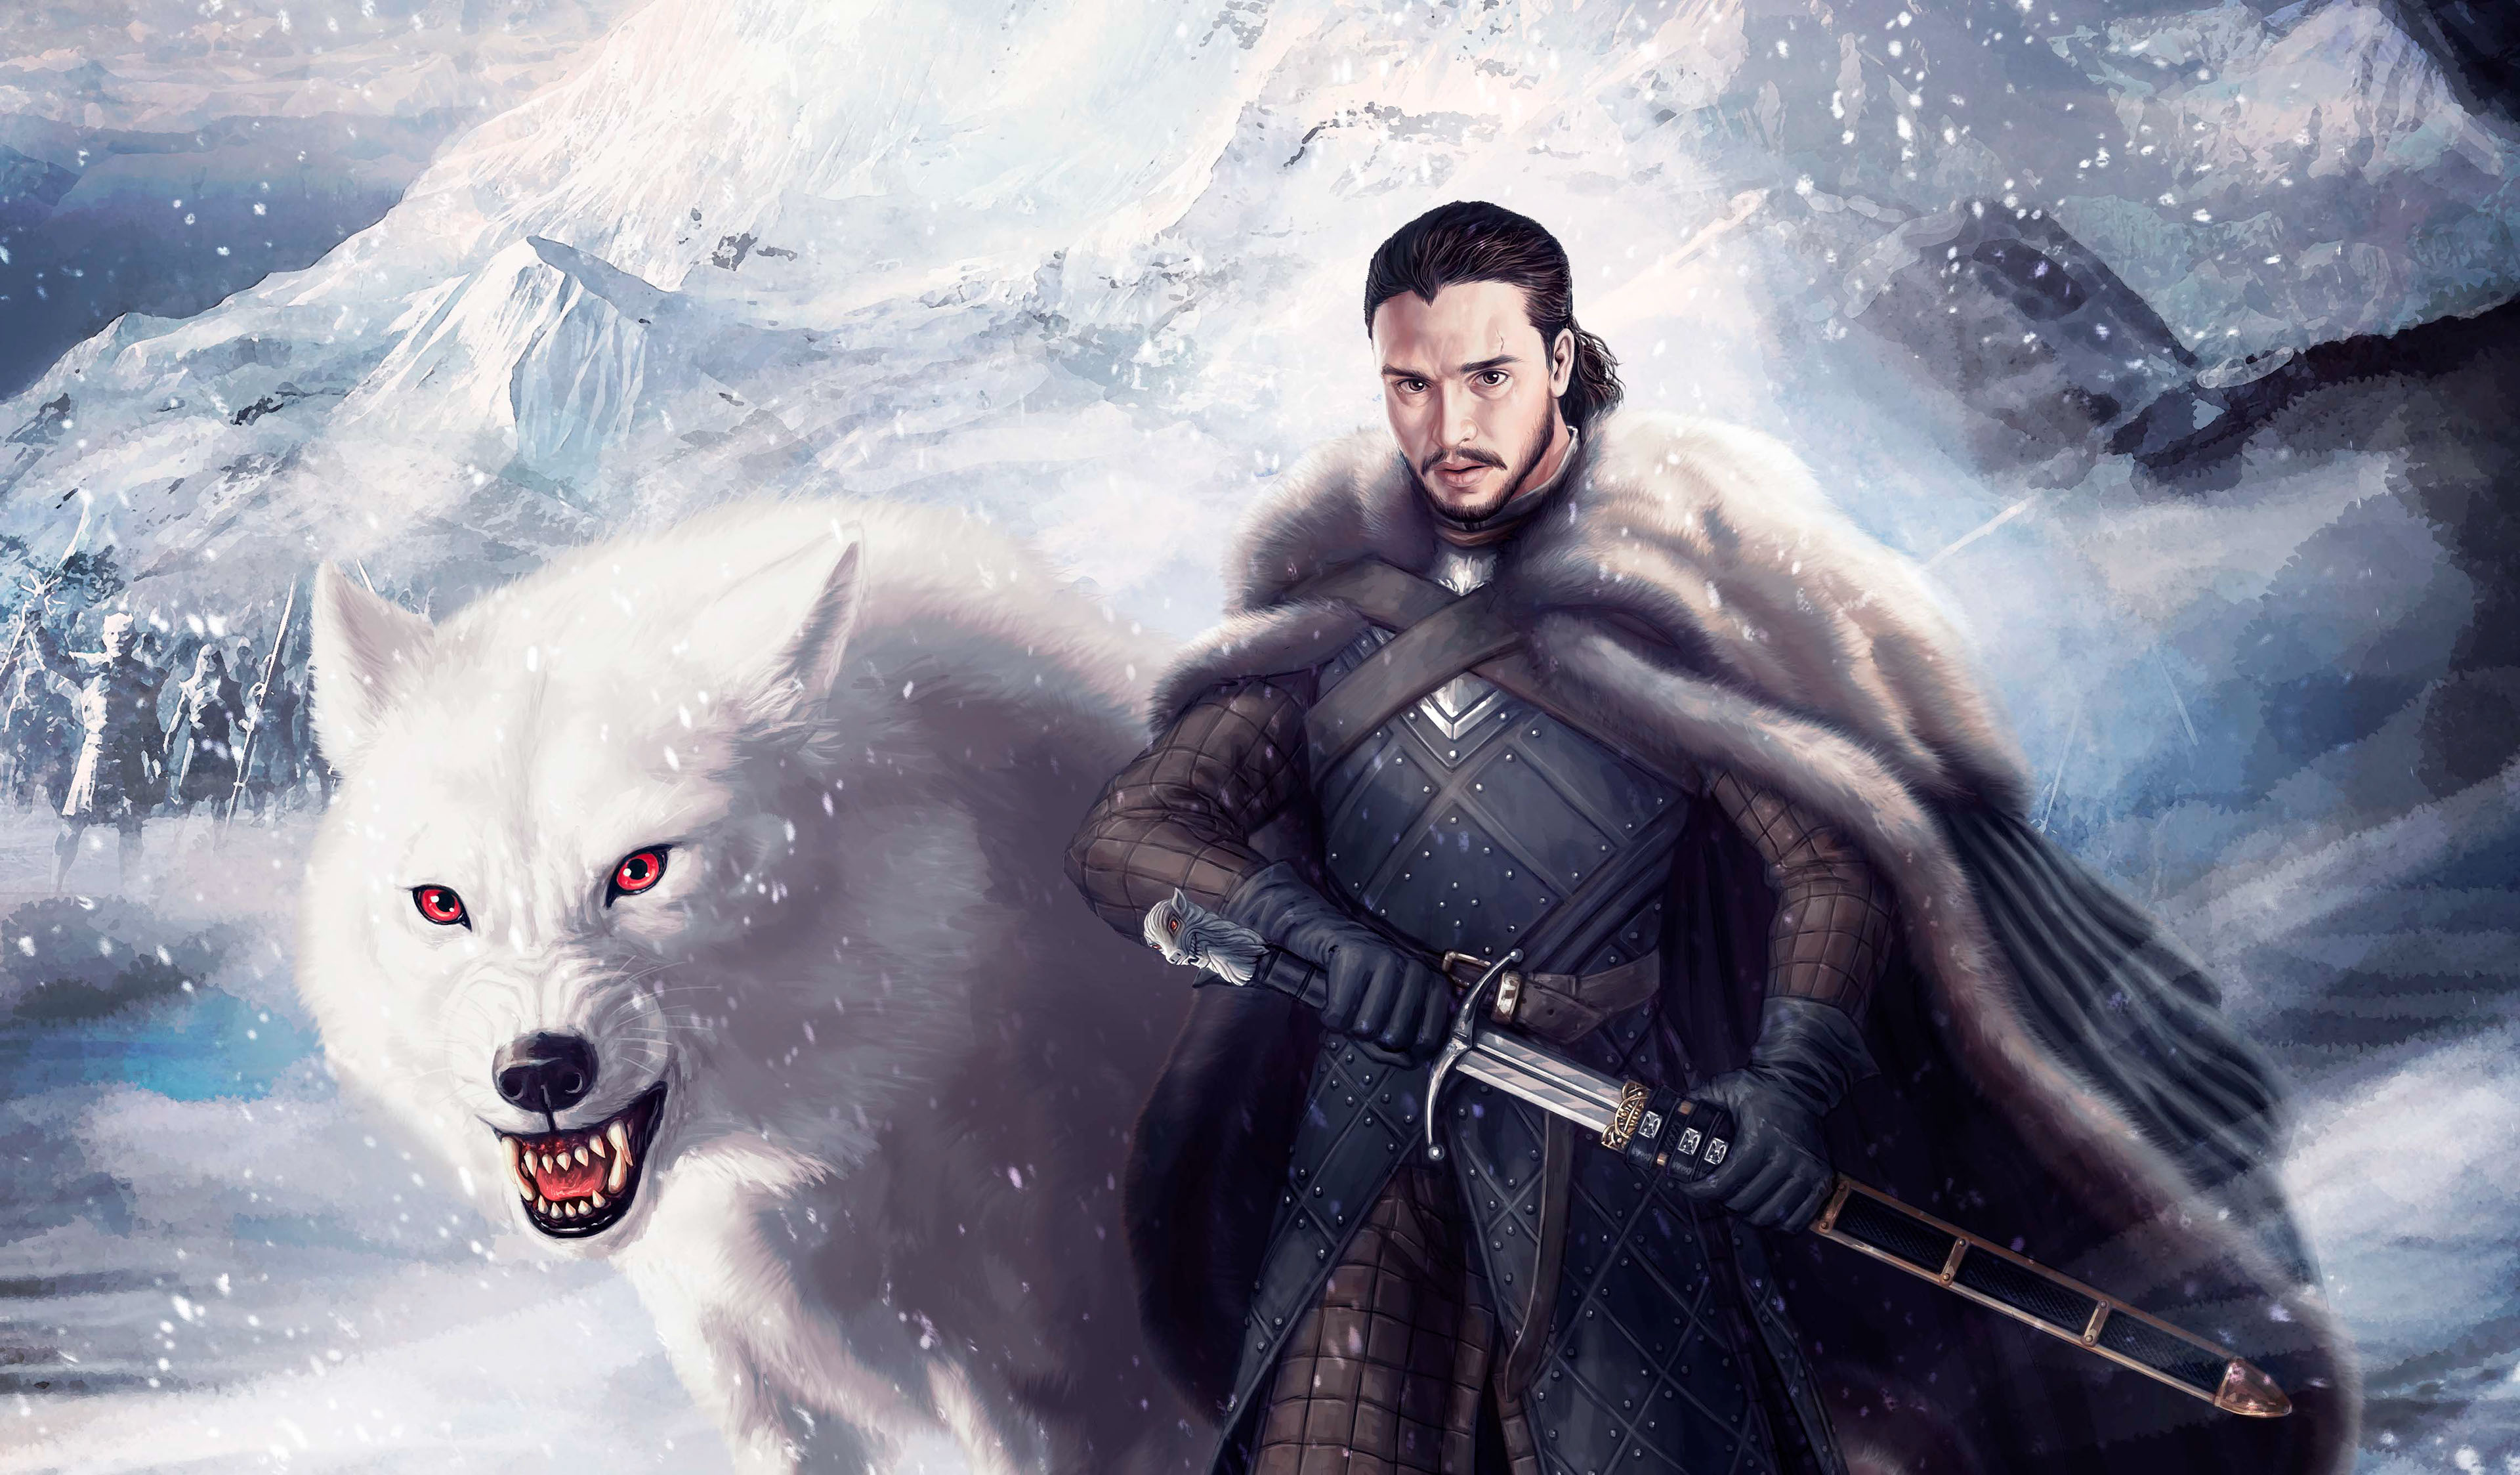 Jon Snow And Ghost 4k, HD Tv Shows, 4k Wallpapers, Images